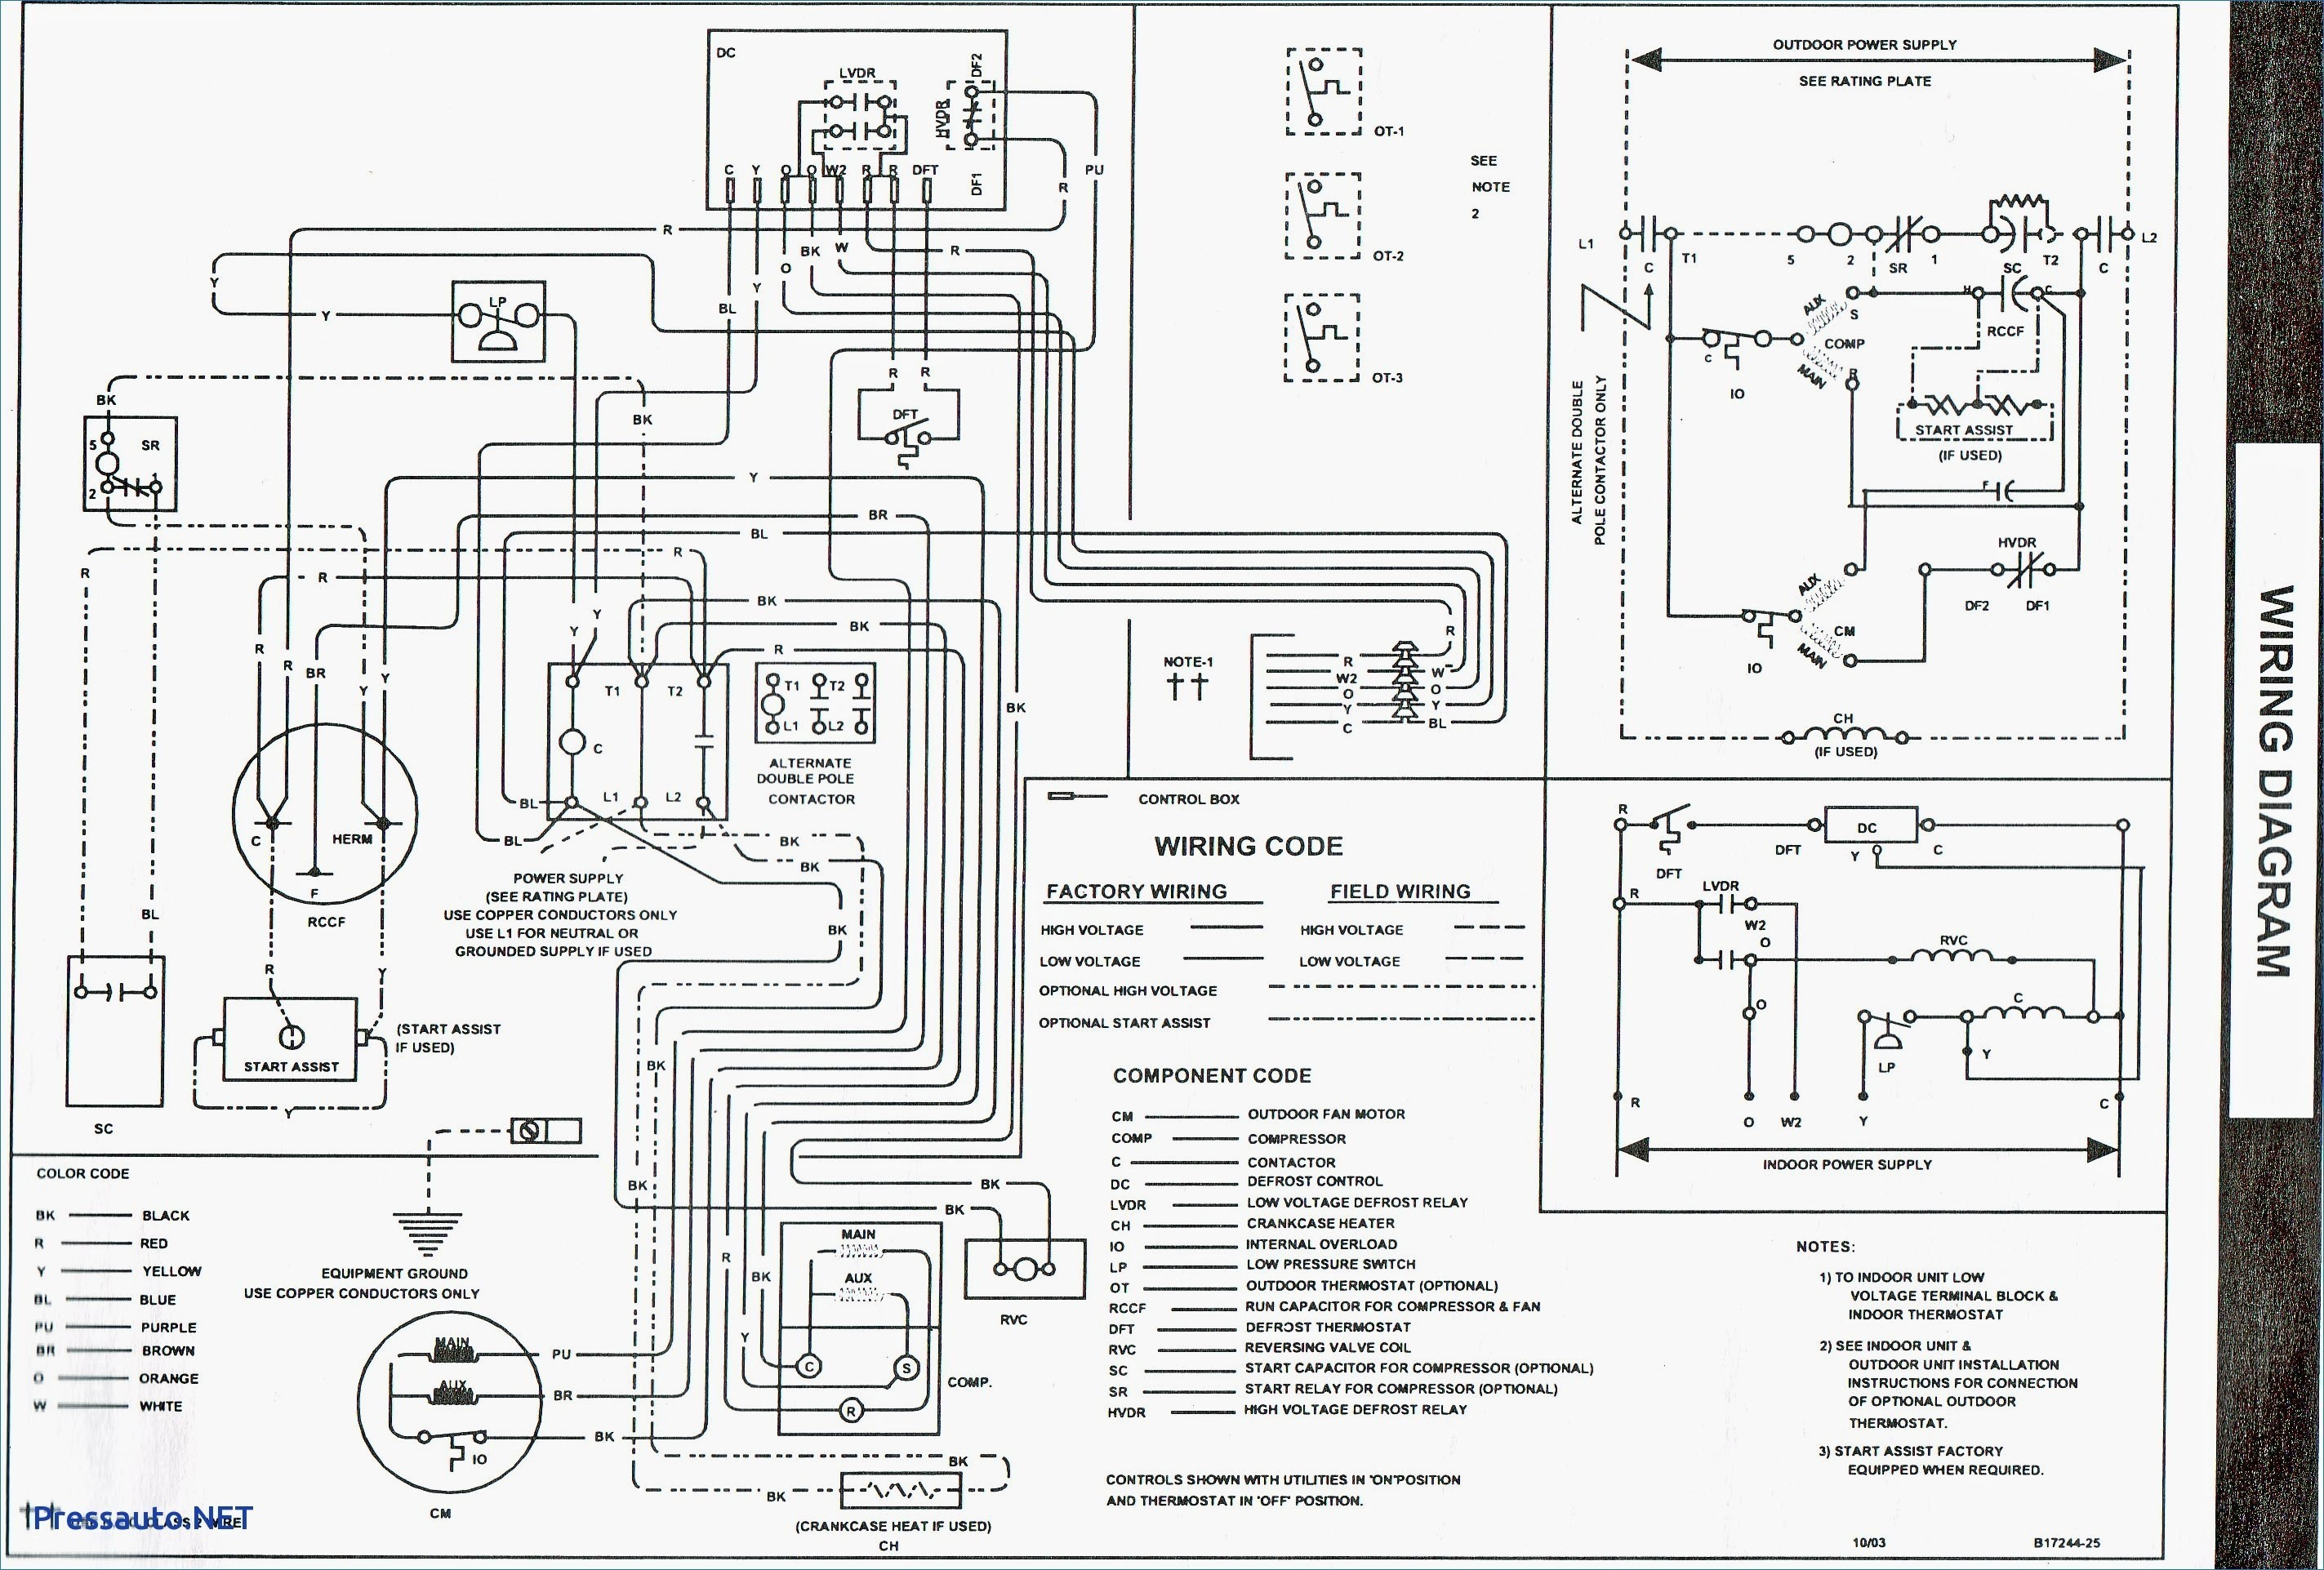 Fedder Gas Furnace Wiring - Wiring Diagrams Folder on